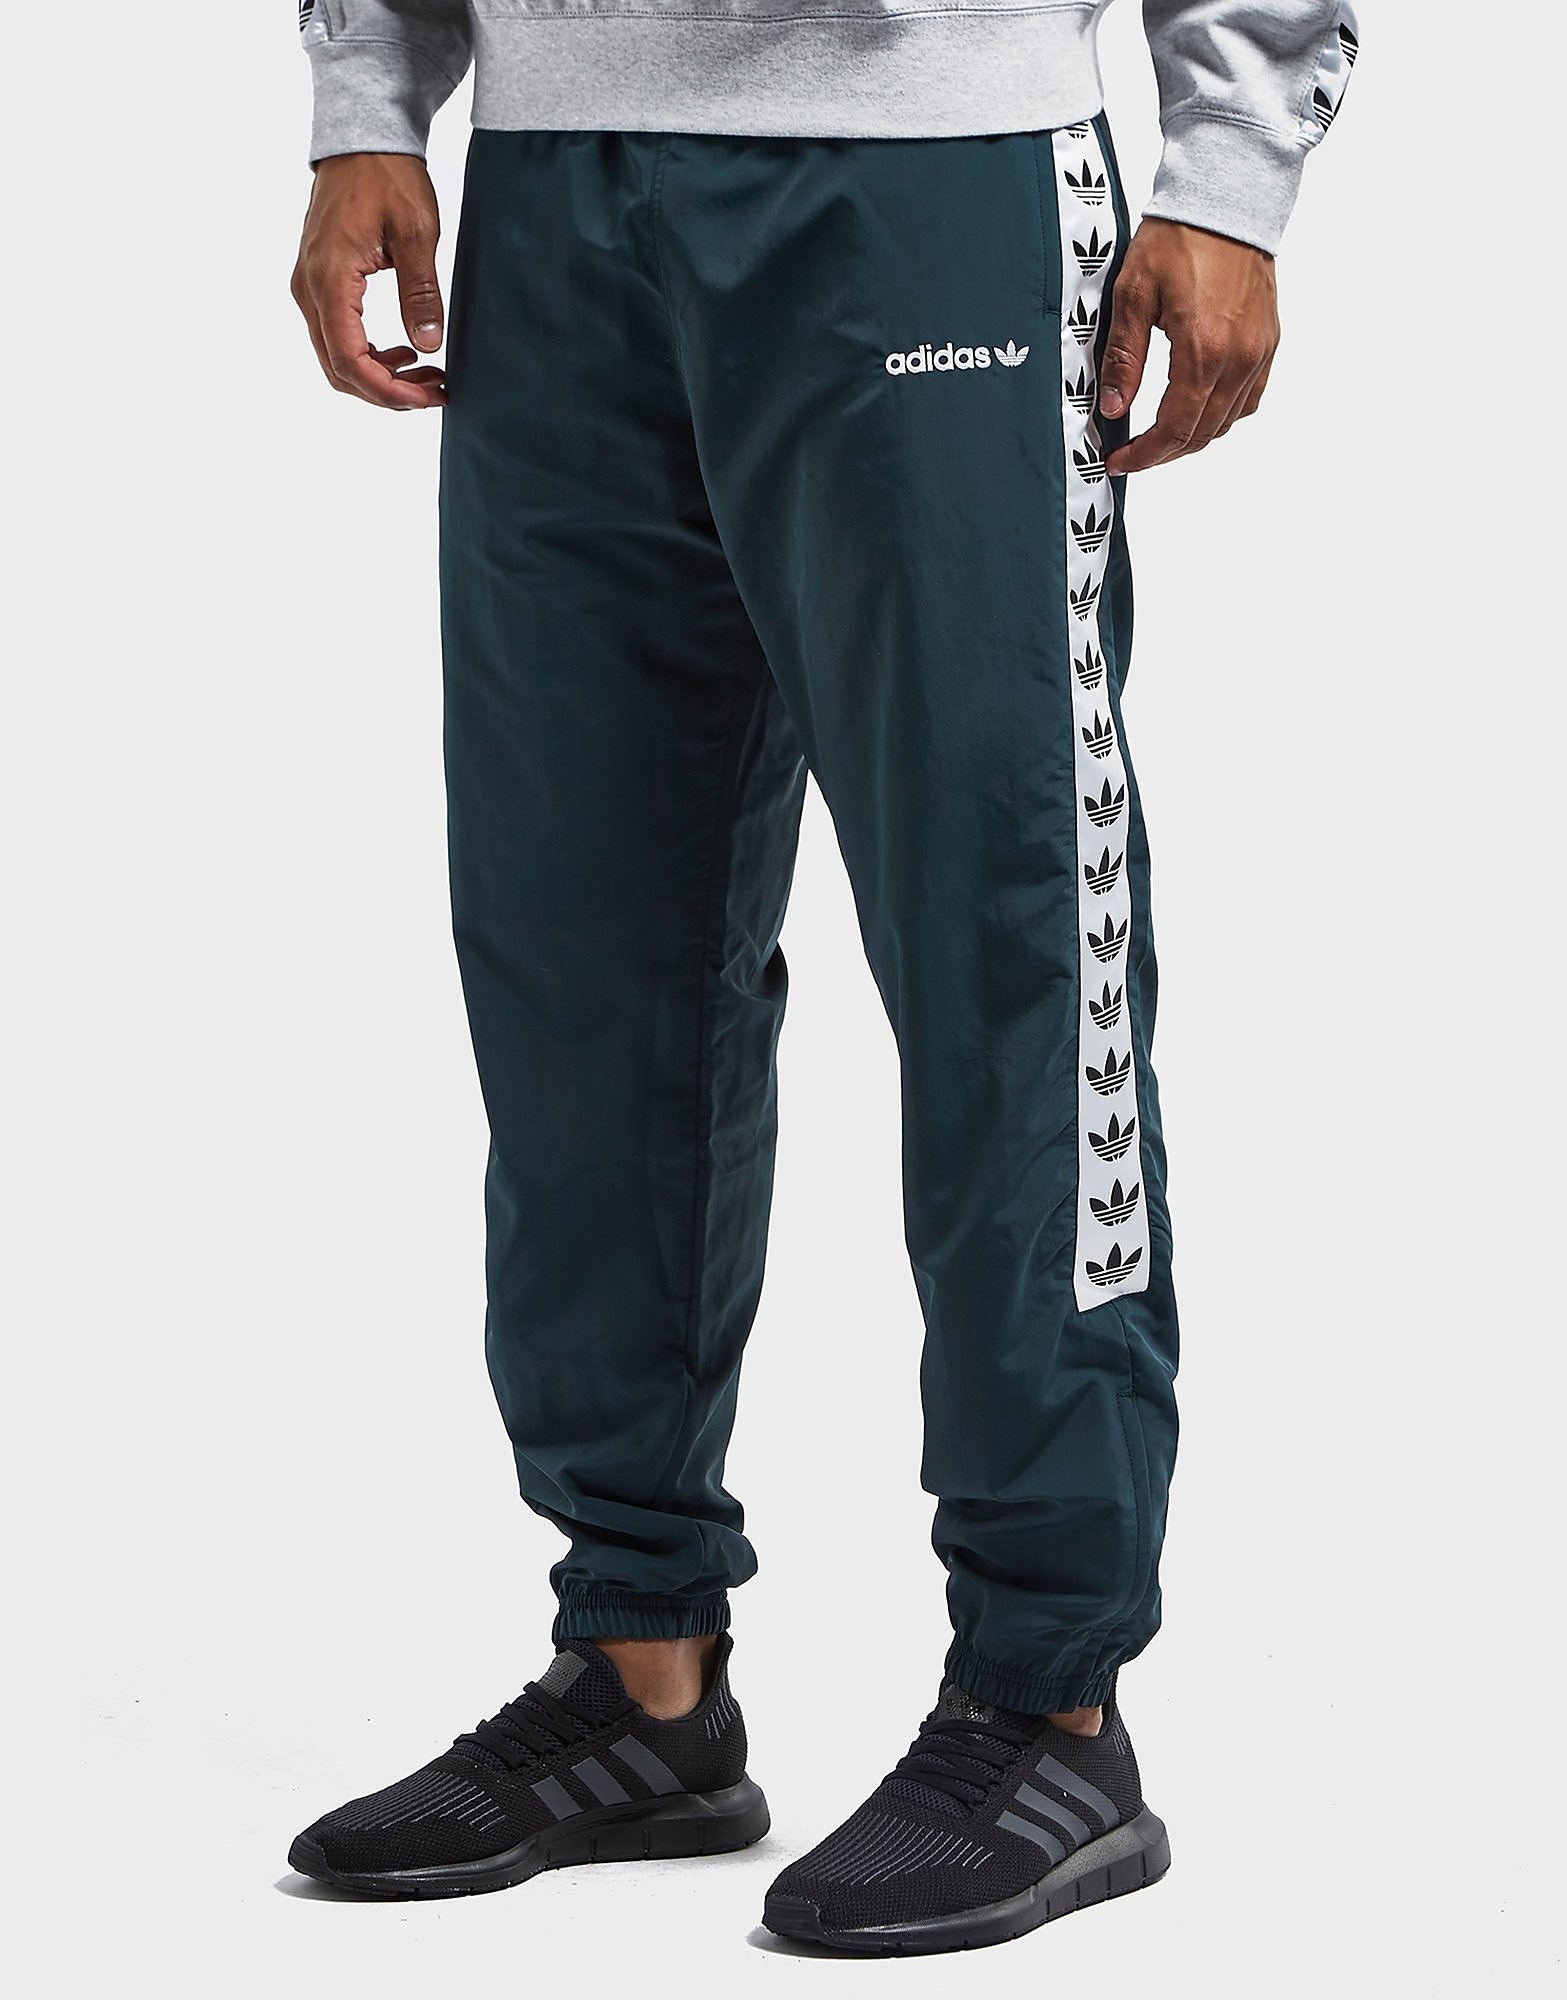 adidas Originals Tape Track Pants